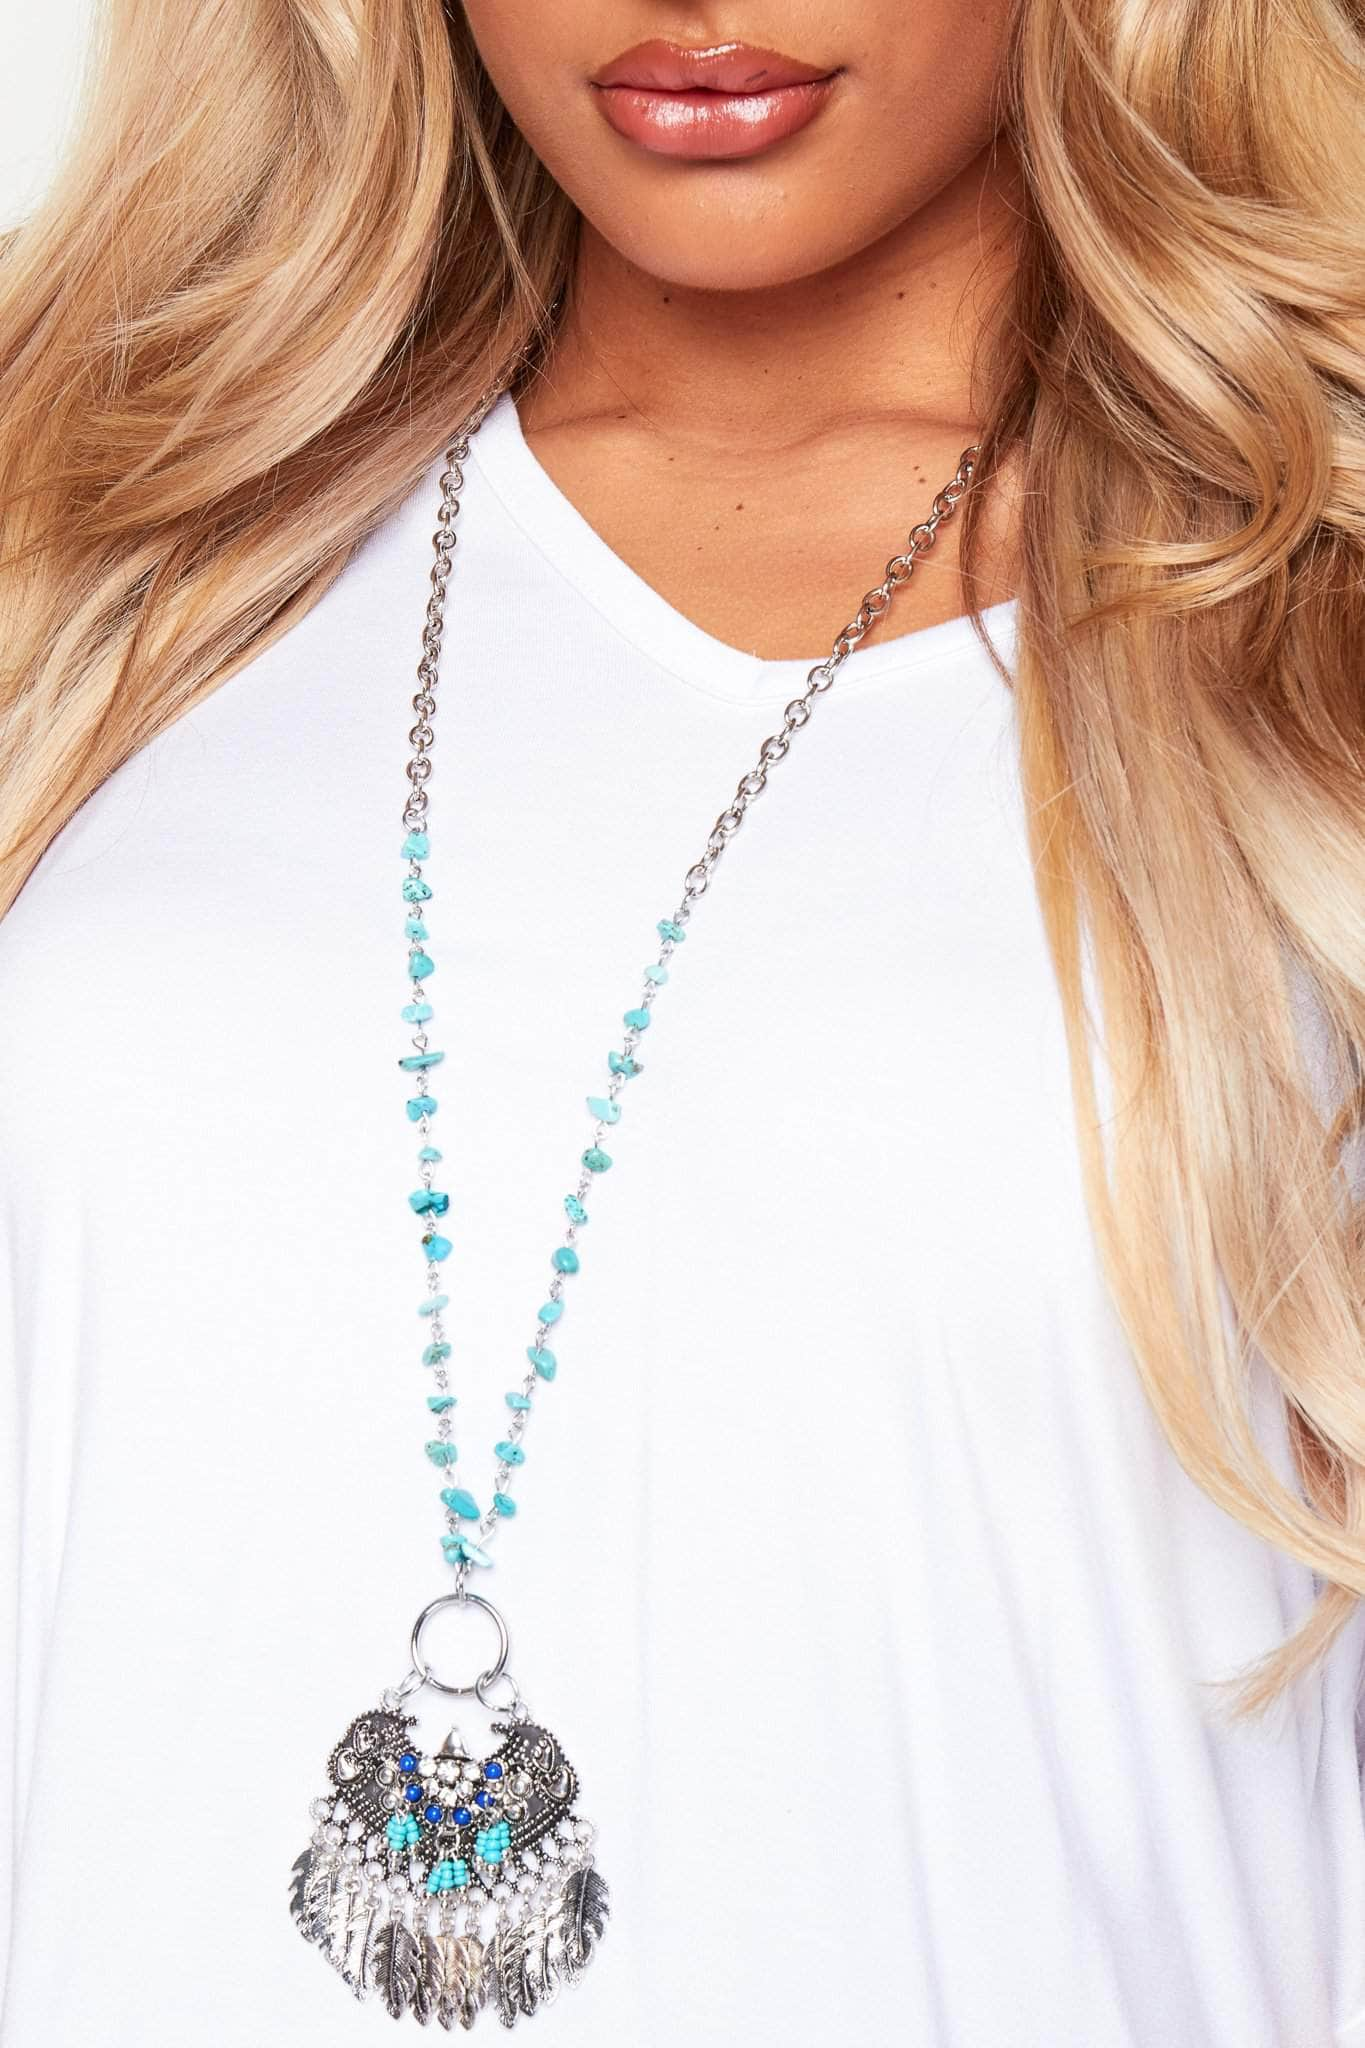 Silver Chain Necklace with Turquoise Beads